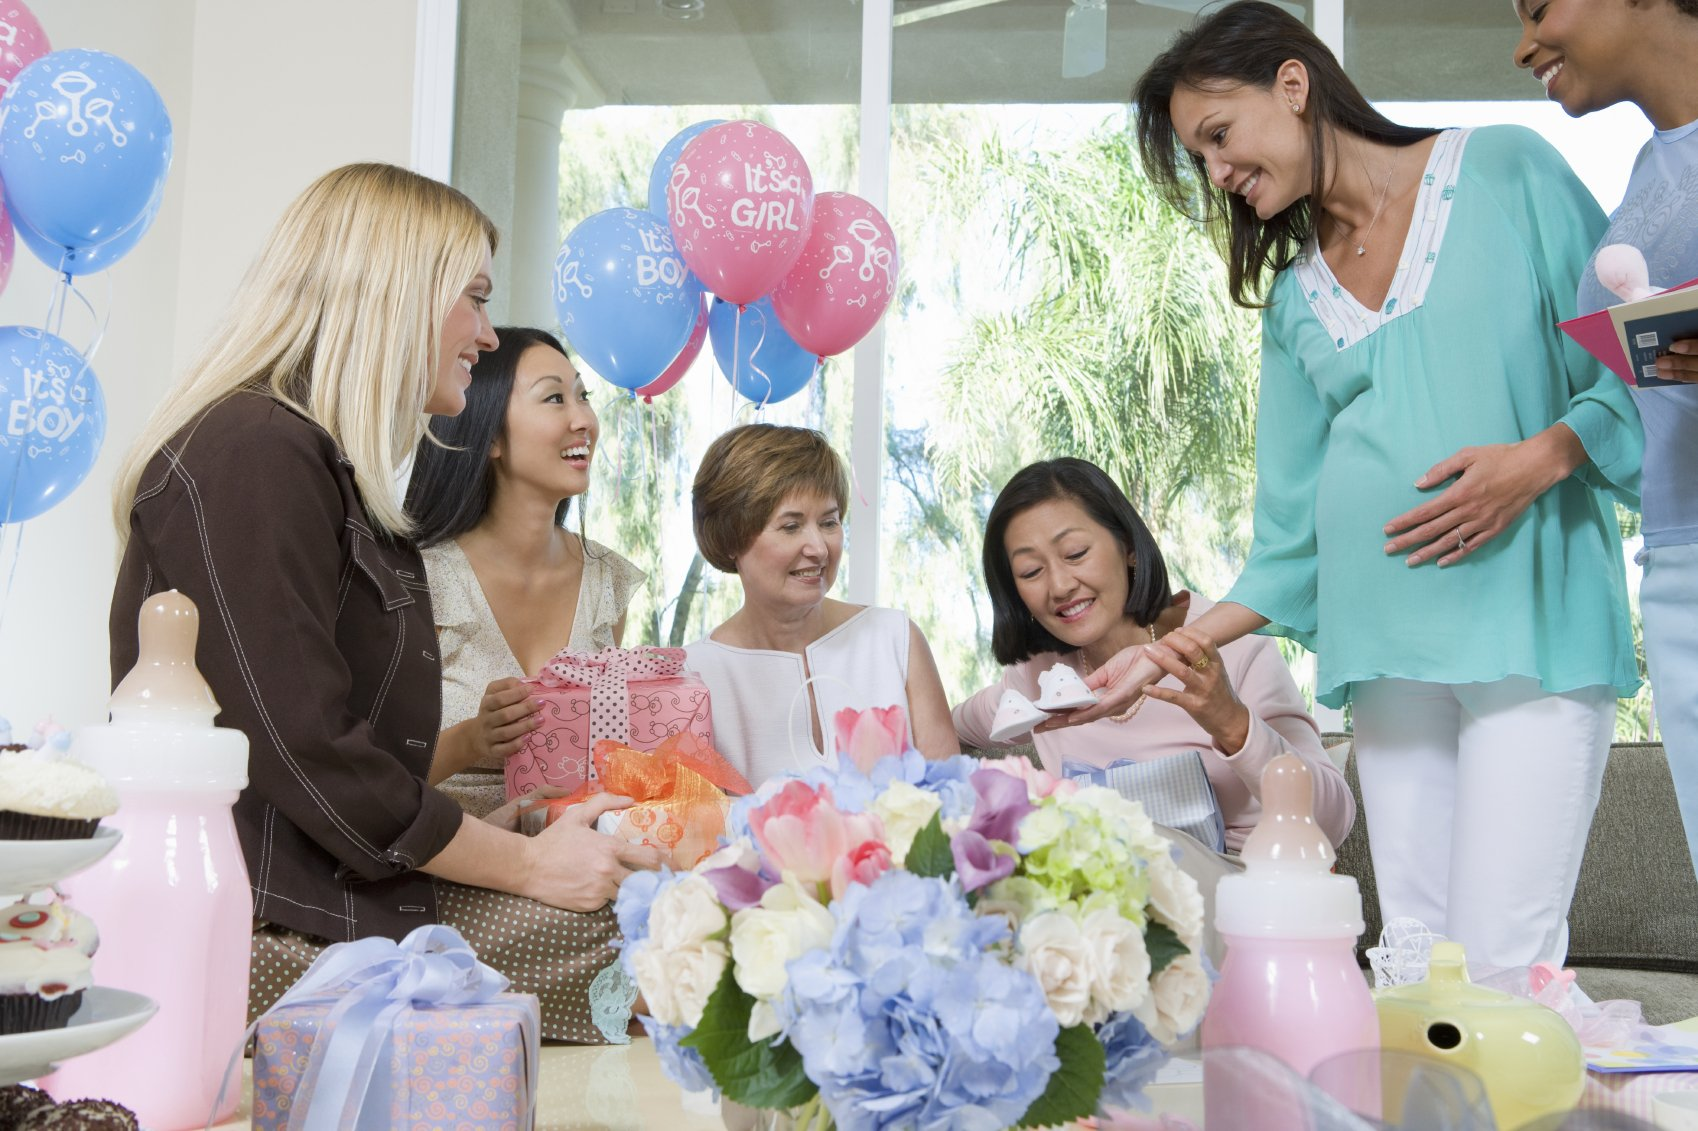 Games take a look at these 11 fun baby shower games solutioingenieria Image collections